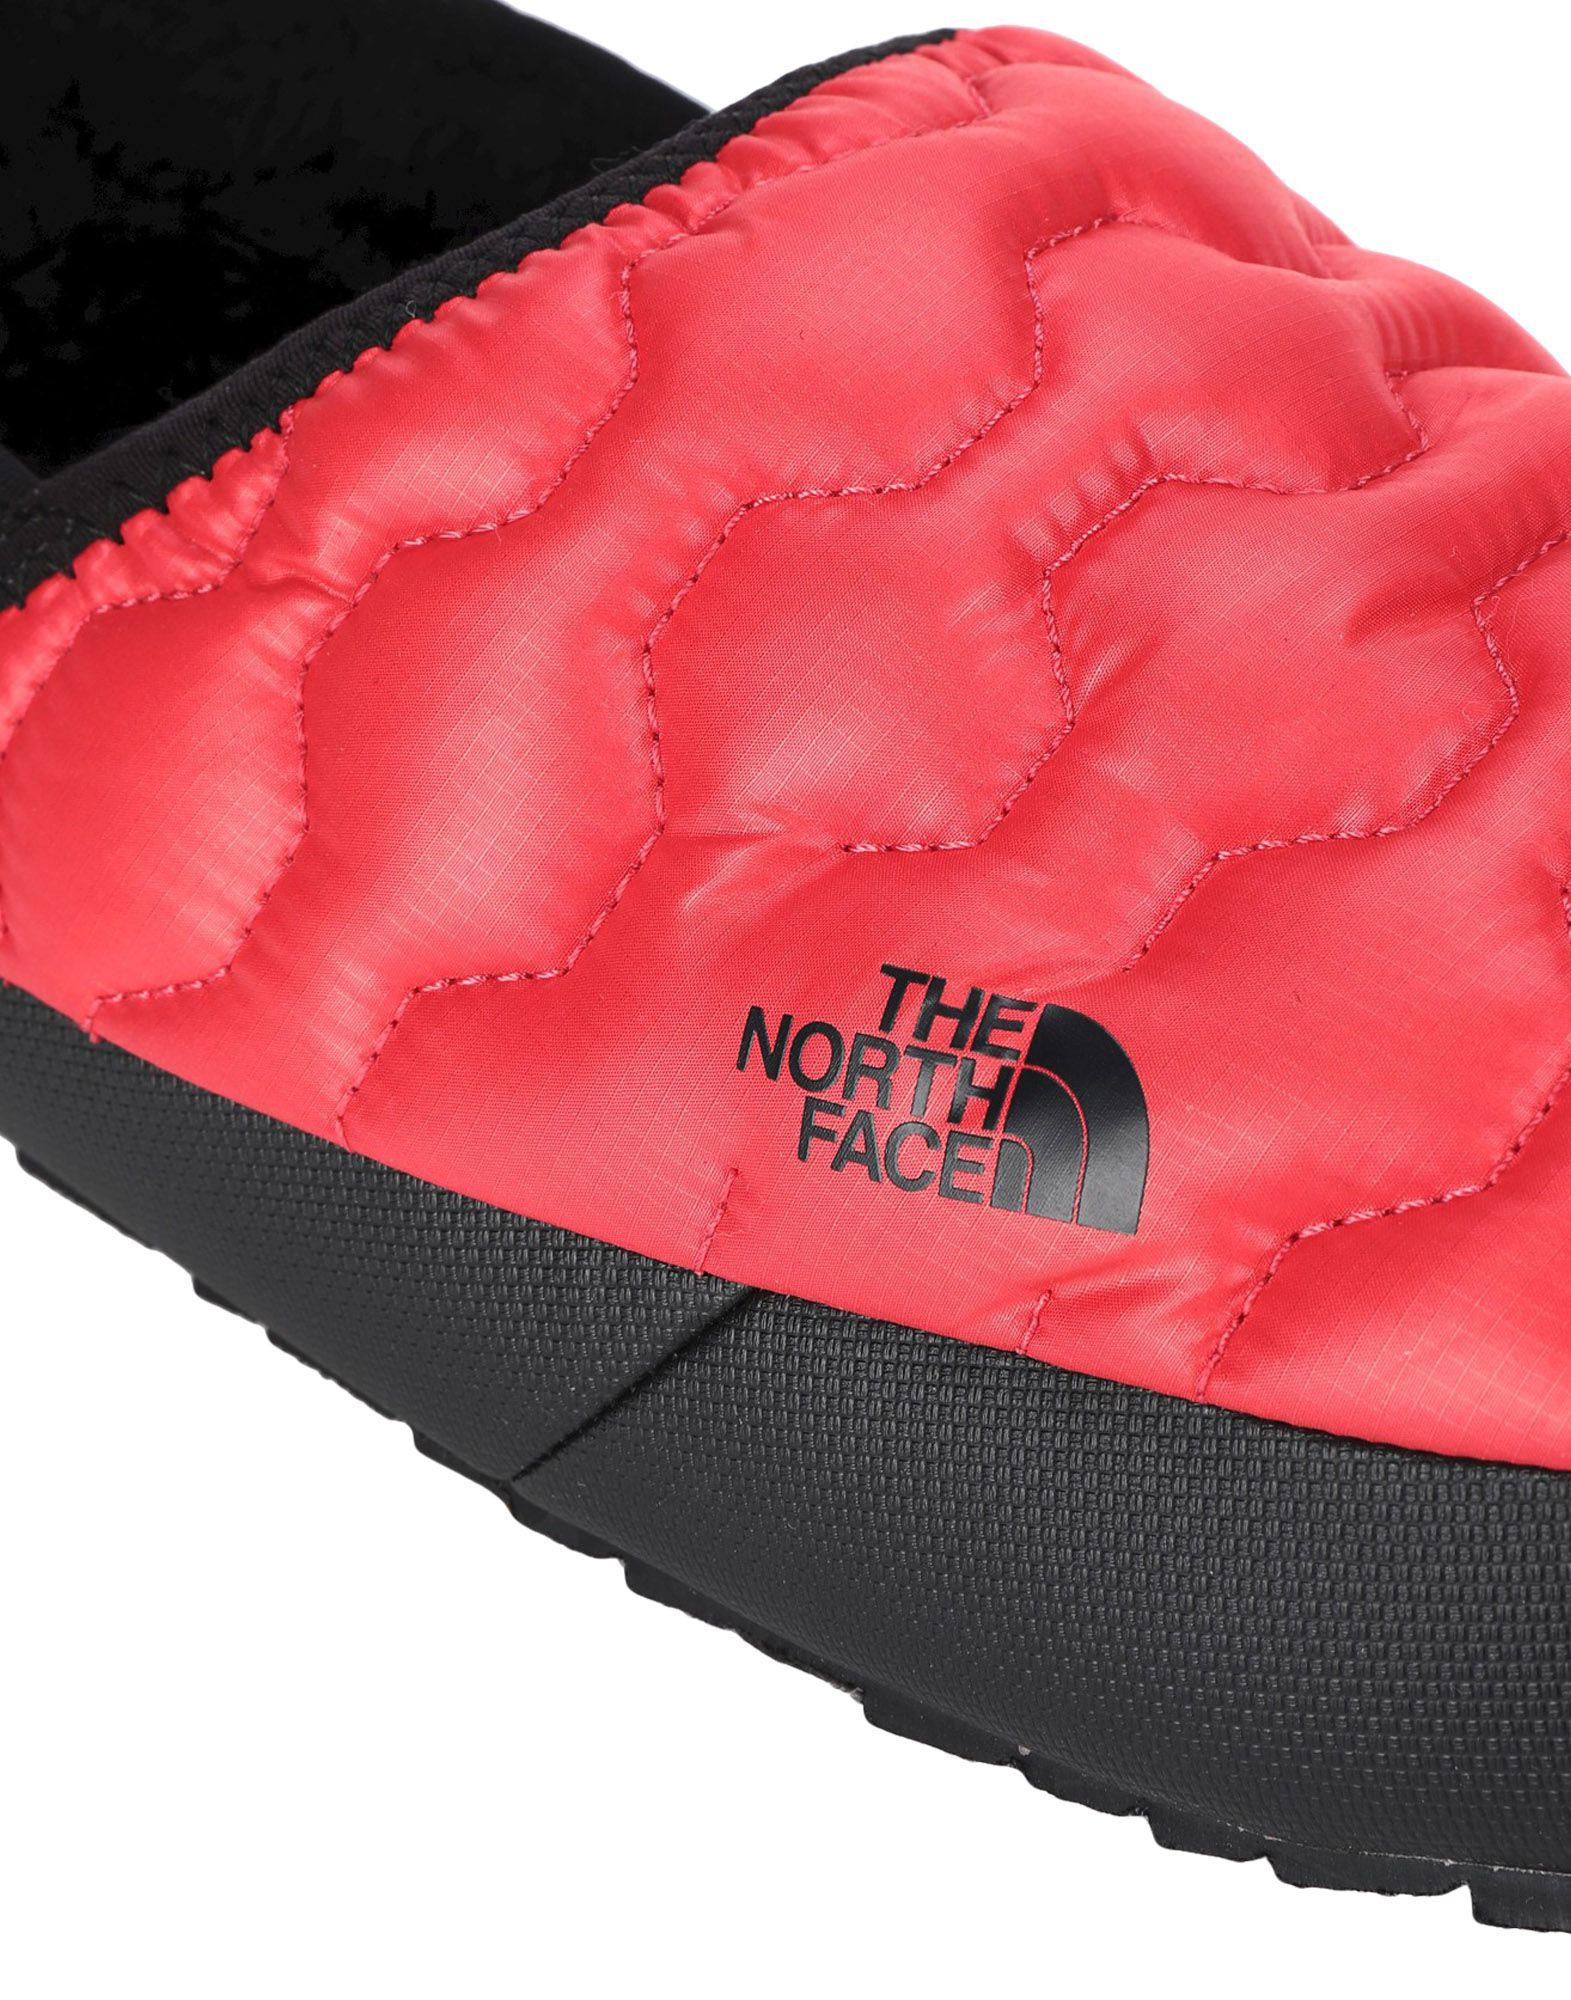 e4dba4049cd9 The North Face Slippers in Red for Men - Save 15% - Lyst